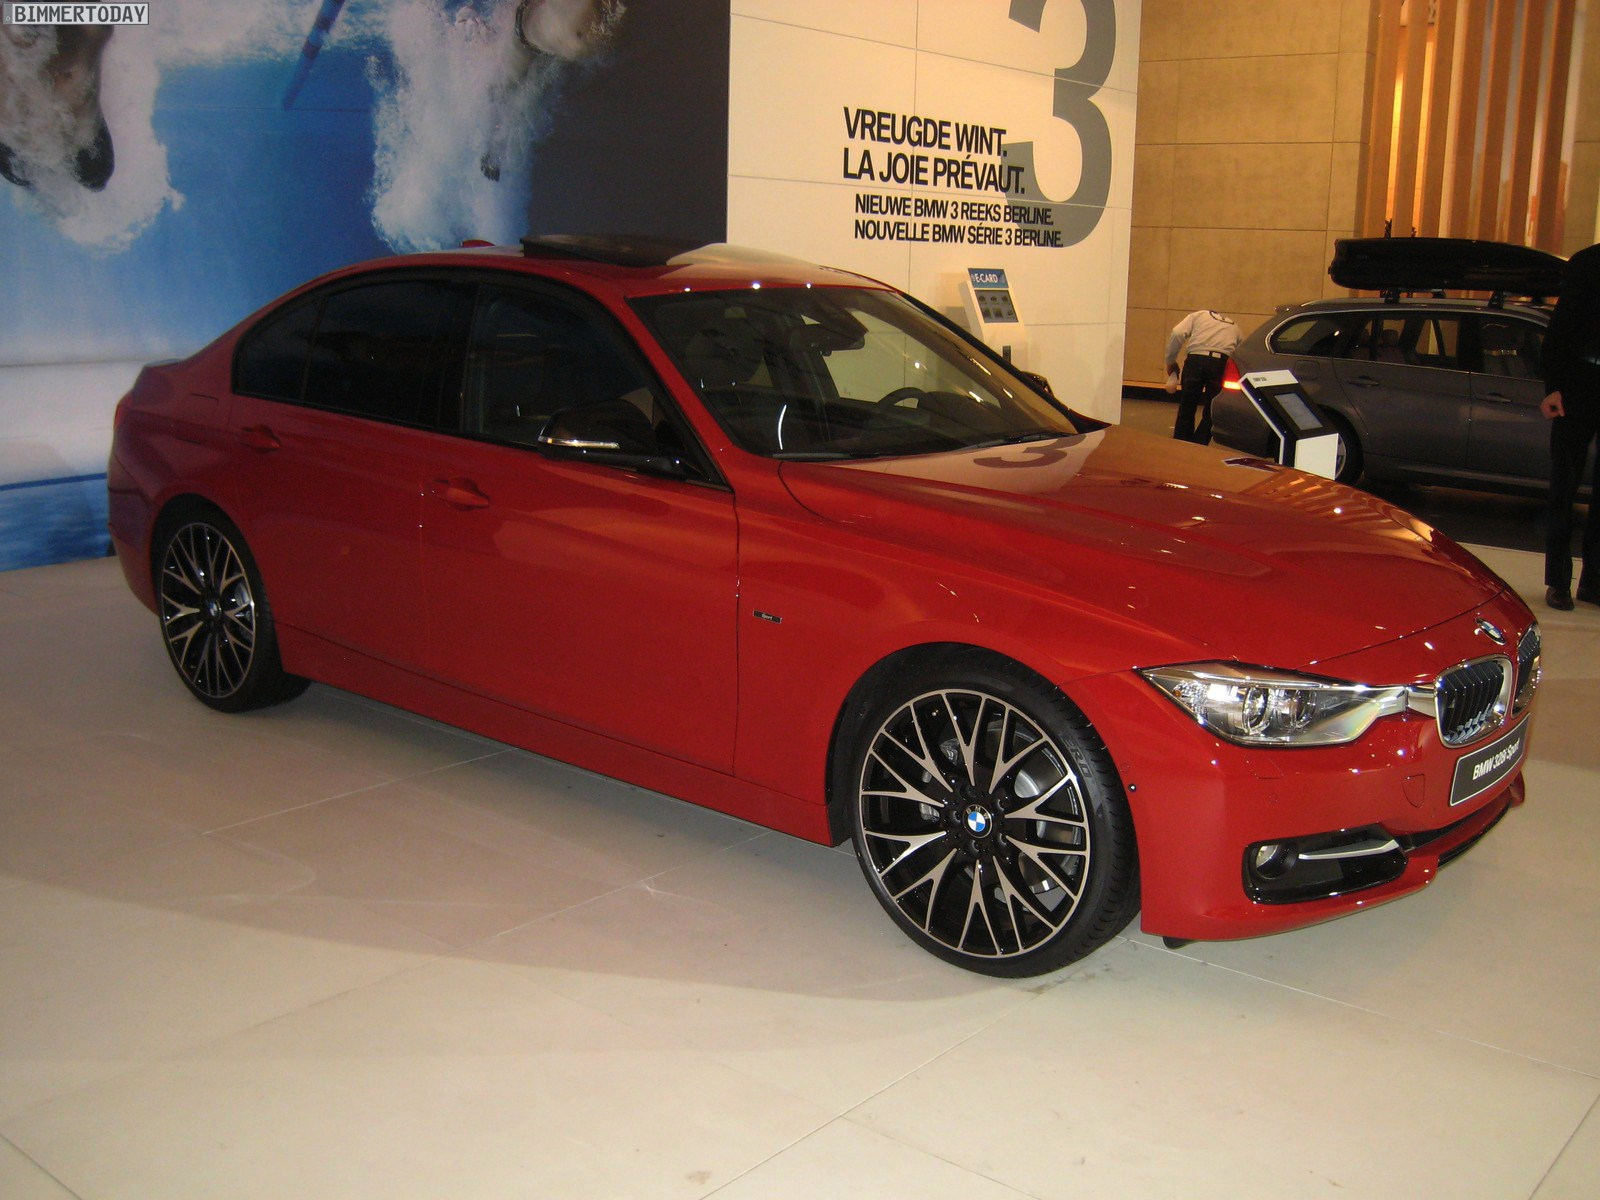 br ssel motor show 2012 mehr bilder vom bmw 3er f30 sport. Black Bedroom Furniture Sets. Home Design Ideas